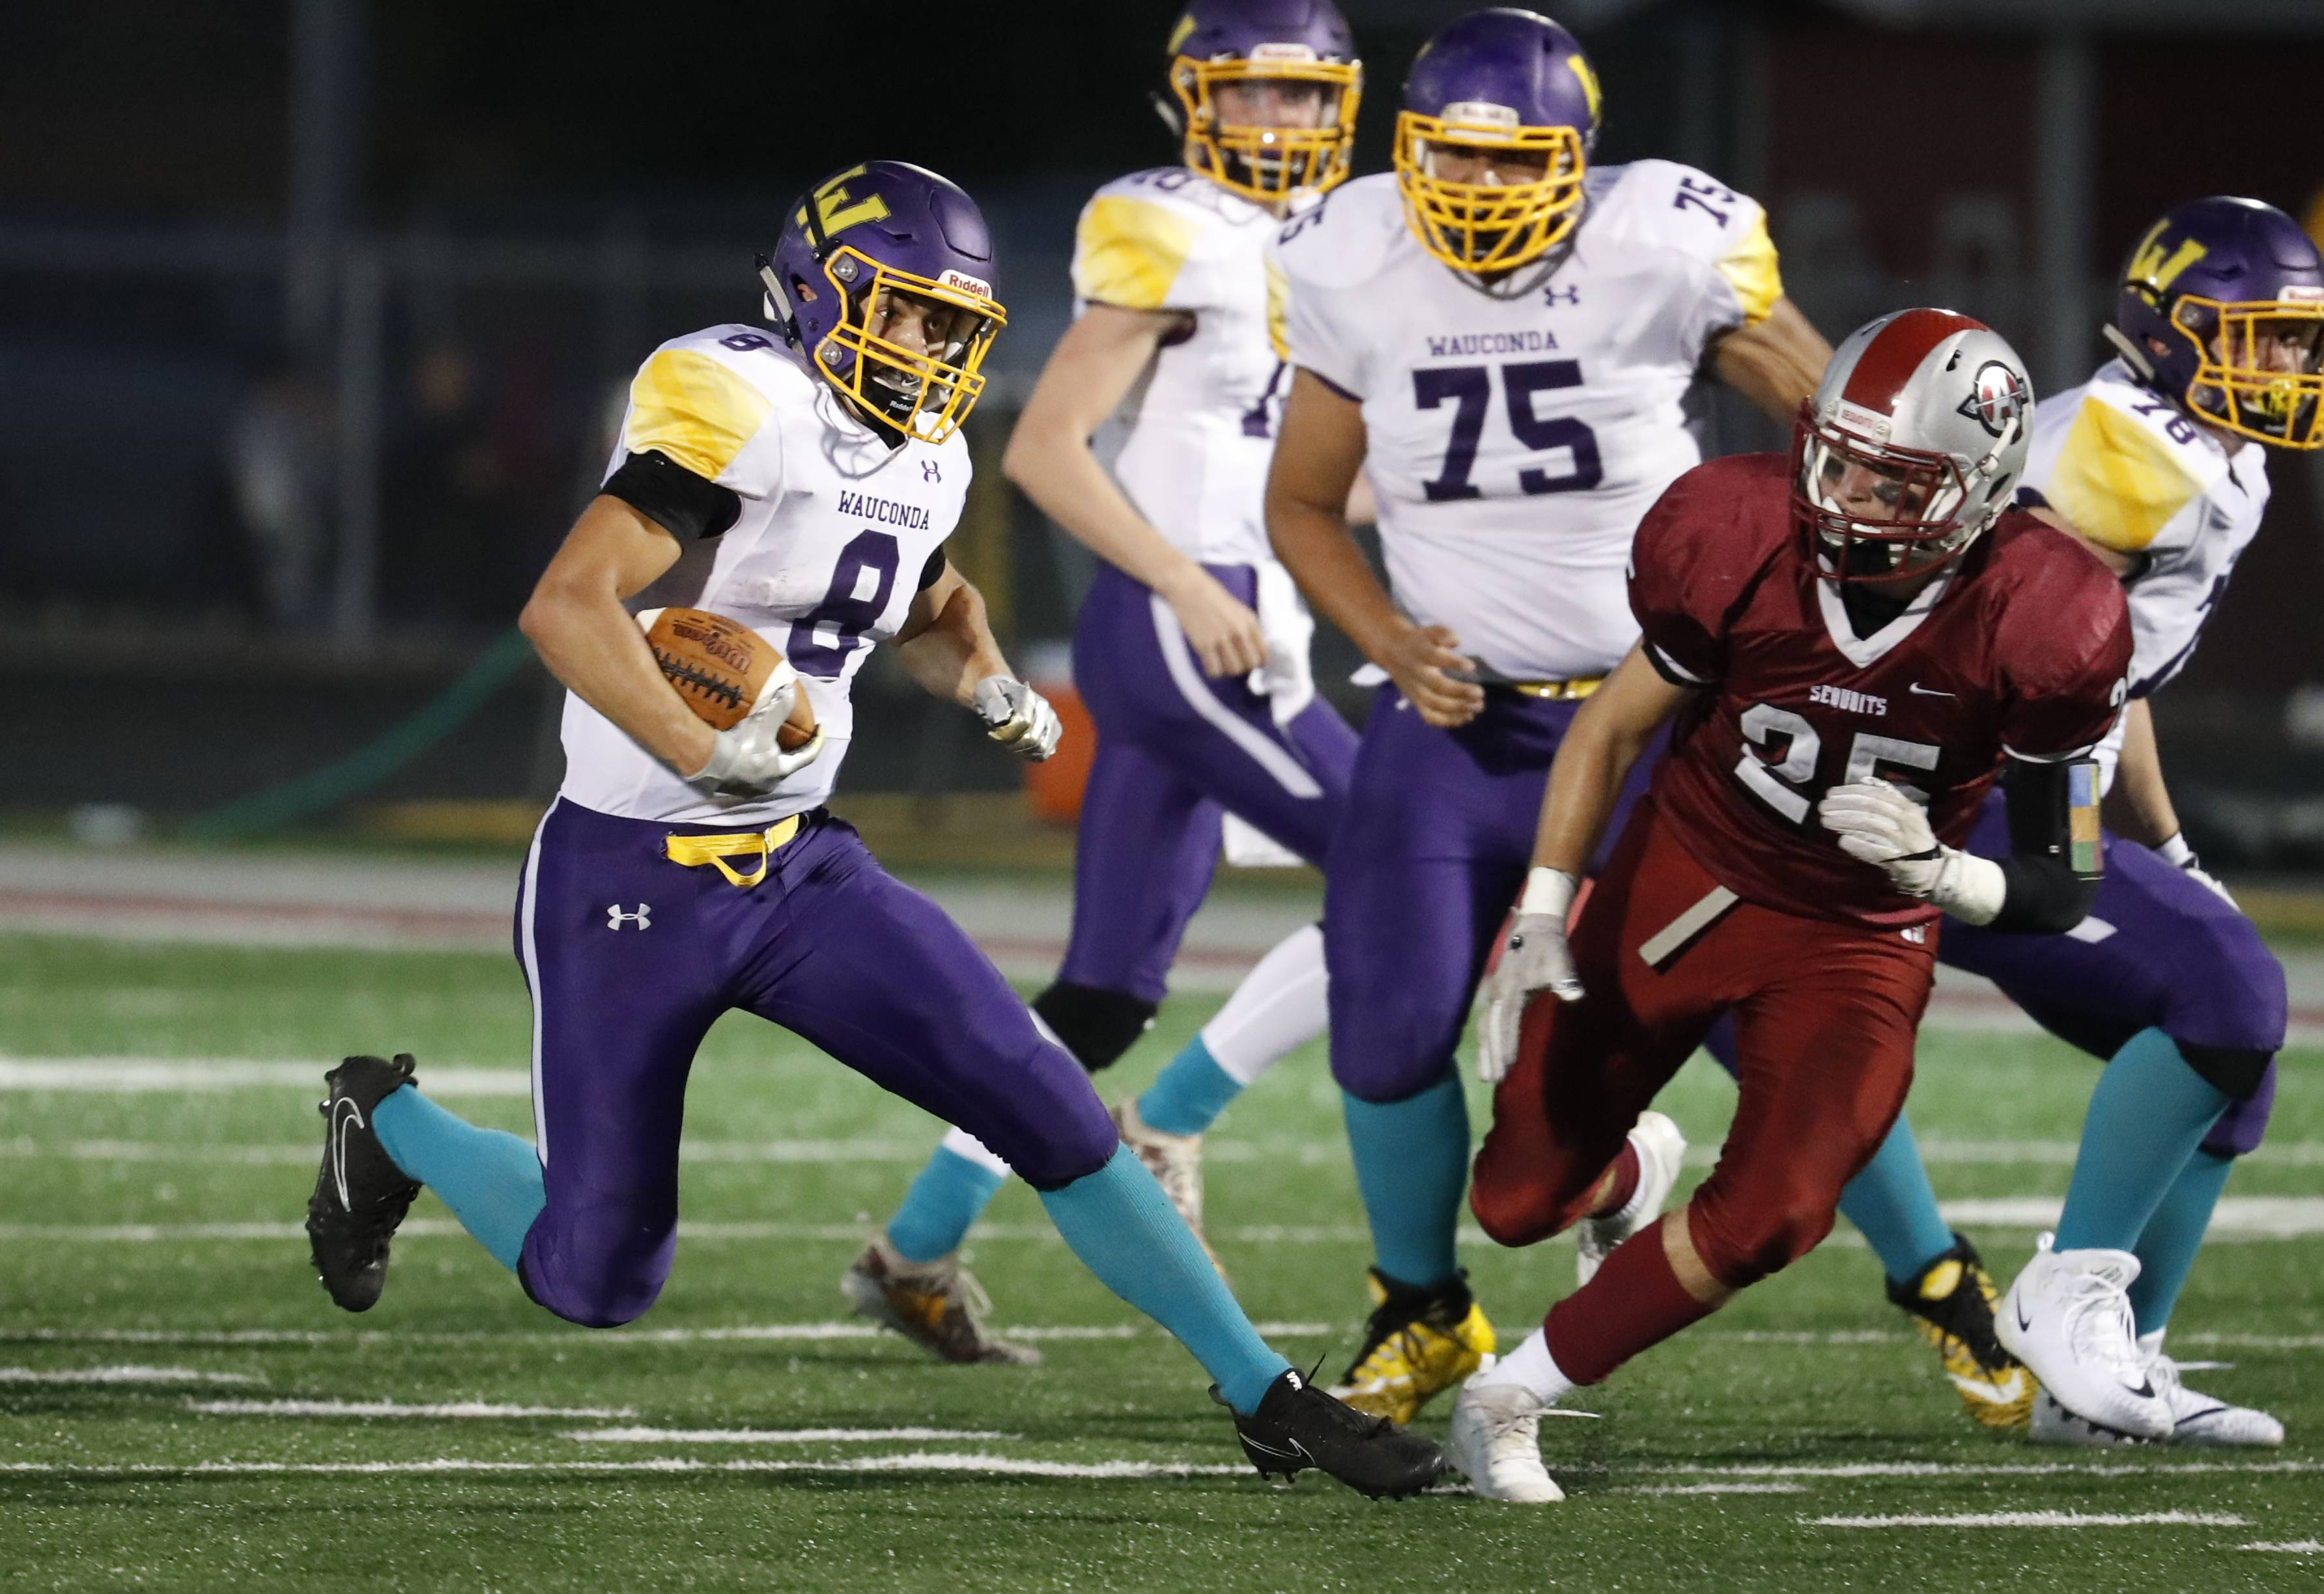 Wauconda's Eric Trela (8) looks to pick up yardage against Antioch earlier this season. Wauconda is at Cary-Grove Friday night in the first round of the Class 6A playoffs.